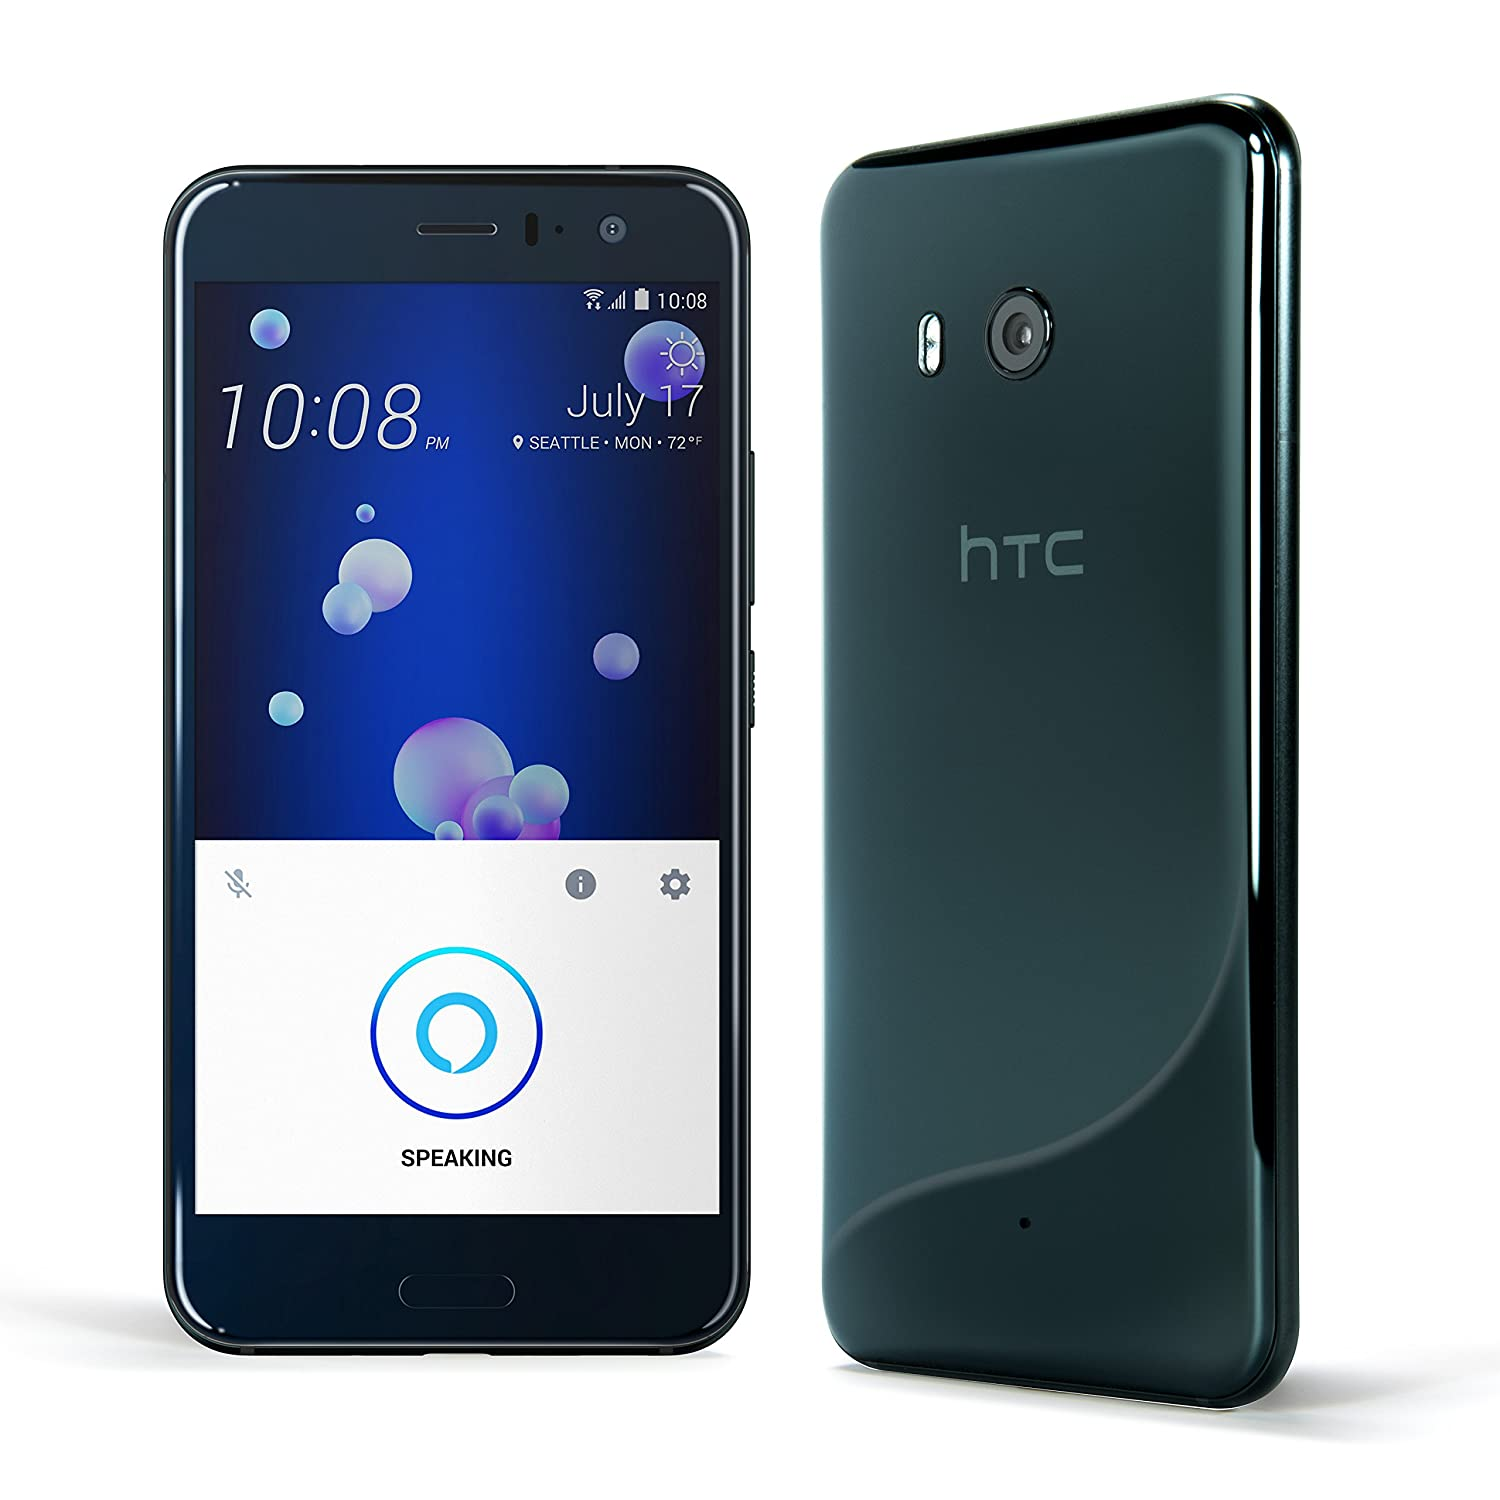 Amazon.com: HTC U11 with hands-free Amazon Alexa – Factory Unlocked –  Brilliant Black – 64GB: Cell Phones & Accessories